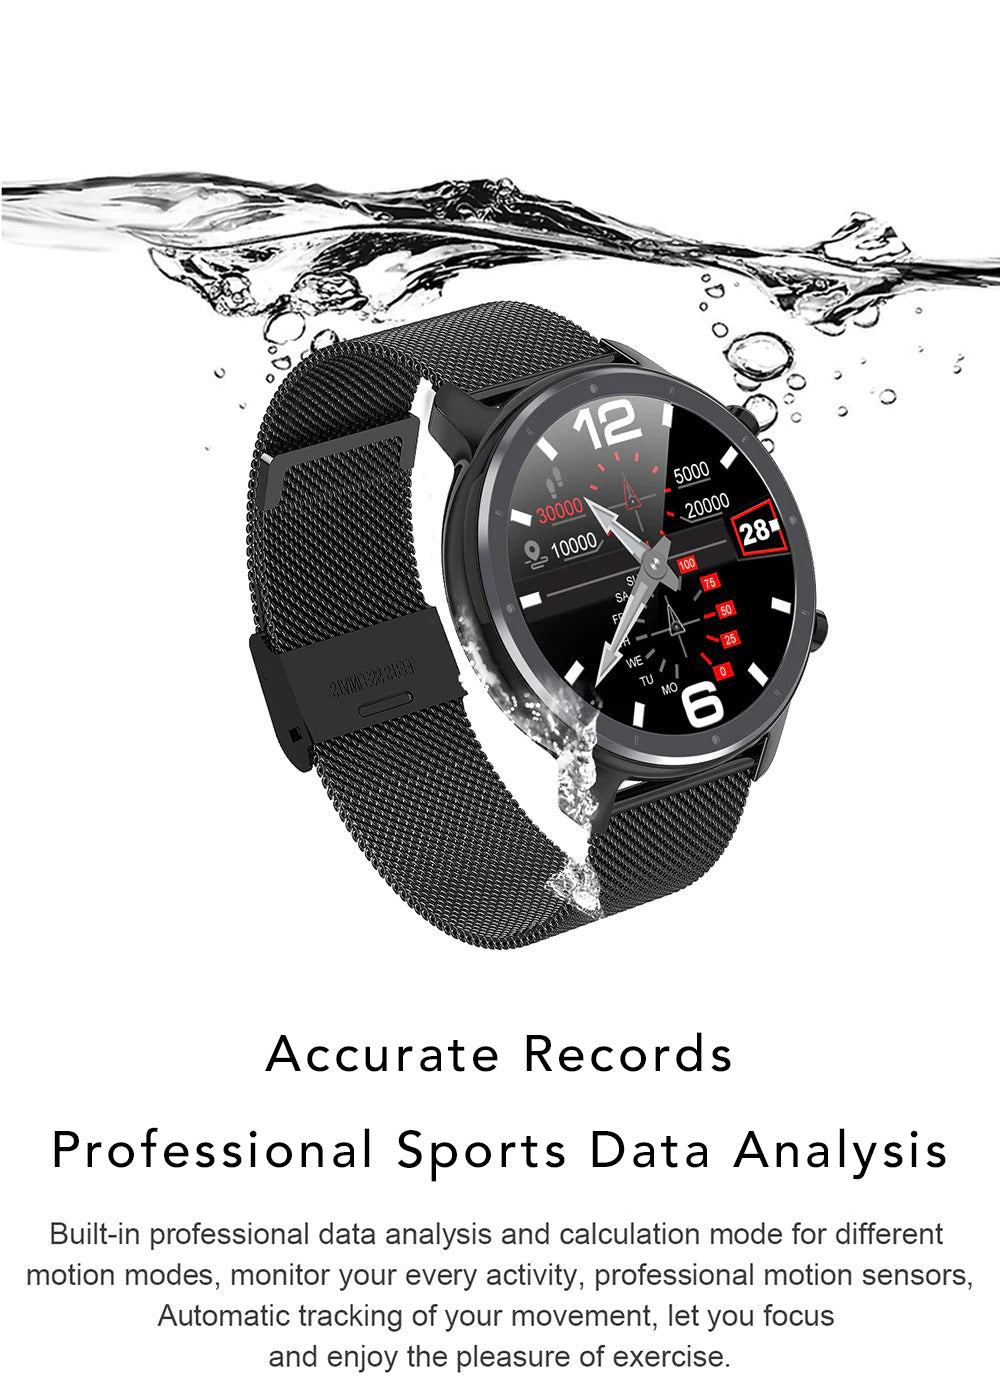 X9 Beretta Smart Watch Professional Sports Data Analysis